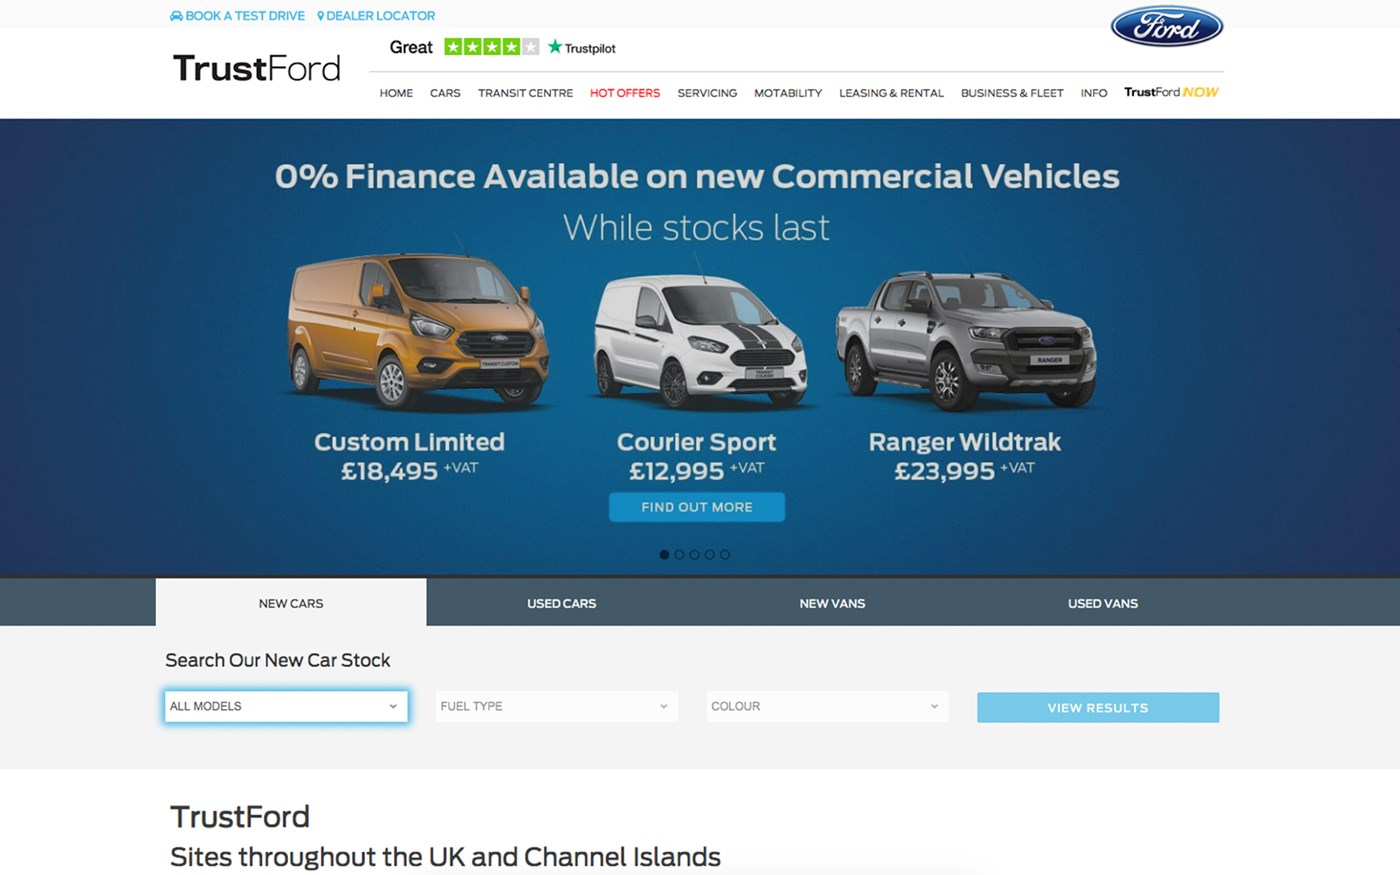 TrustFord website screenshot